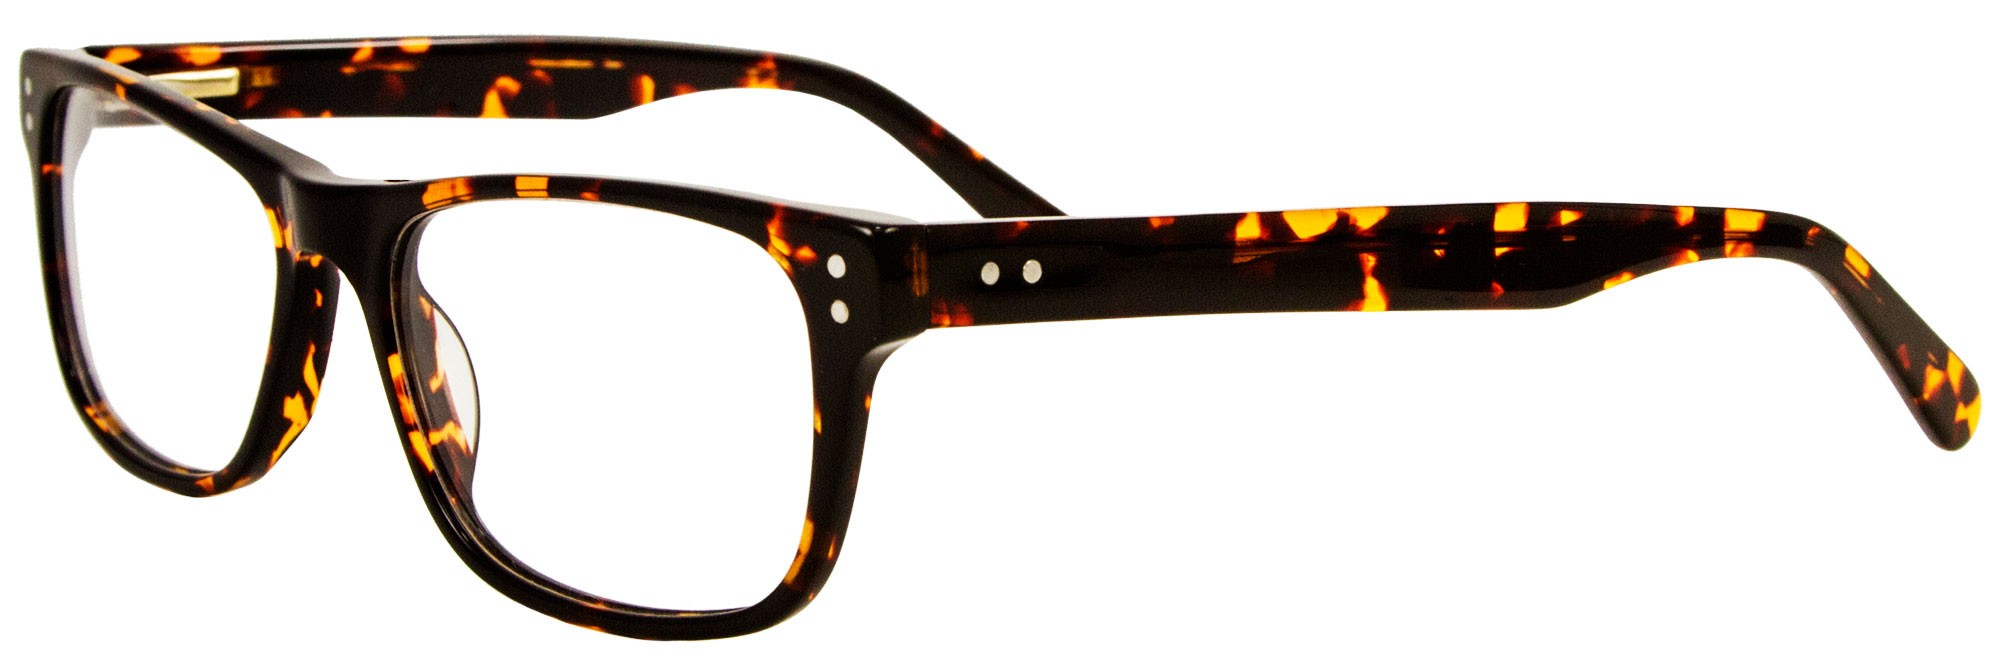 Online Eyeglasses with Customer Service Center in California ...